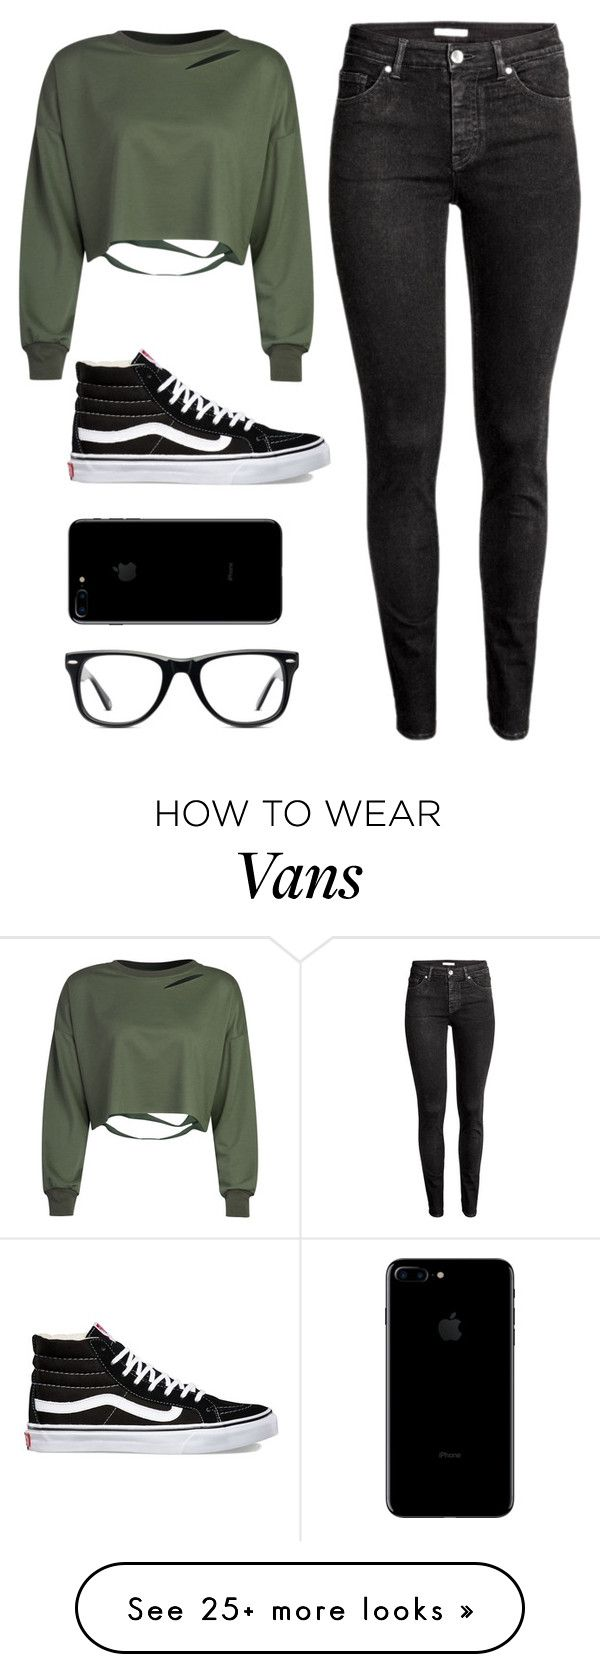 """"" by samhic on Polyvore featuring WithChic, H&M, Vans and Muse"